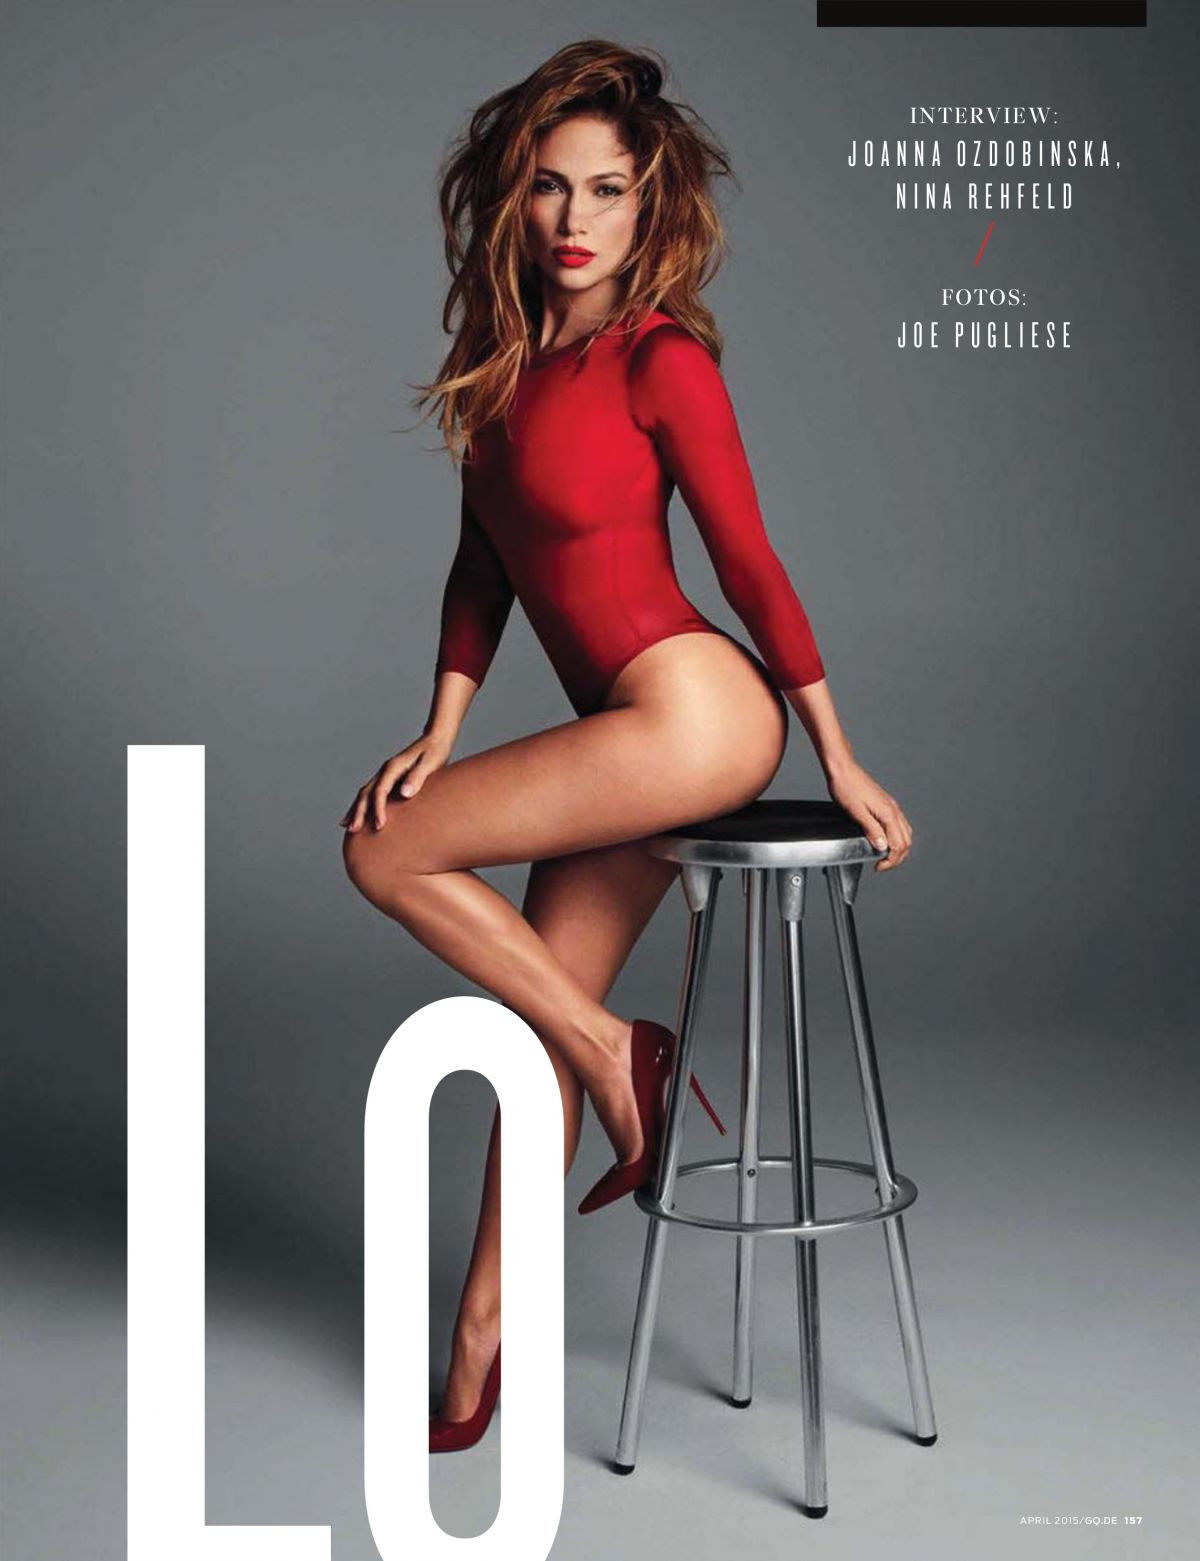 2015 Gq Men Of The Year Party In Los Angeles: JENNIFER LOPEZ In GQ Magazine, Germany April 2015 Issue